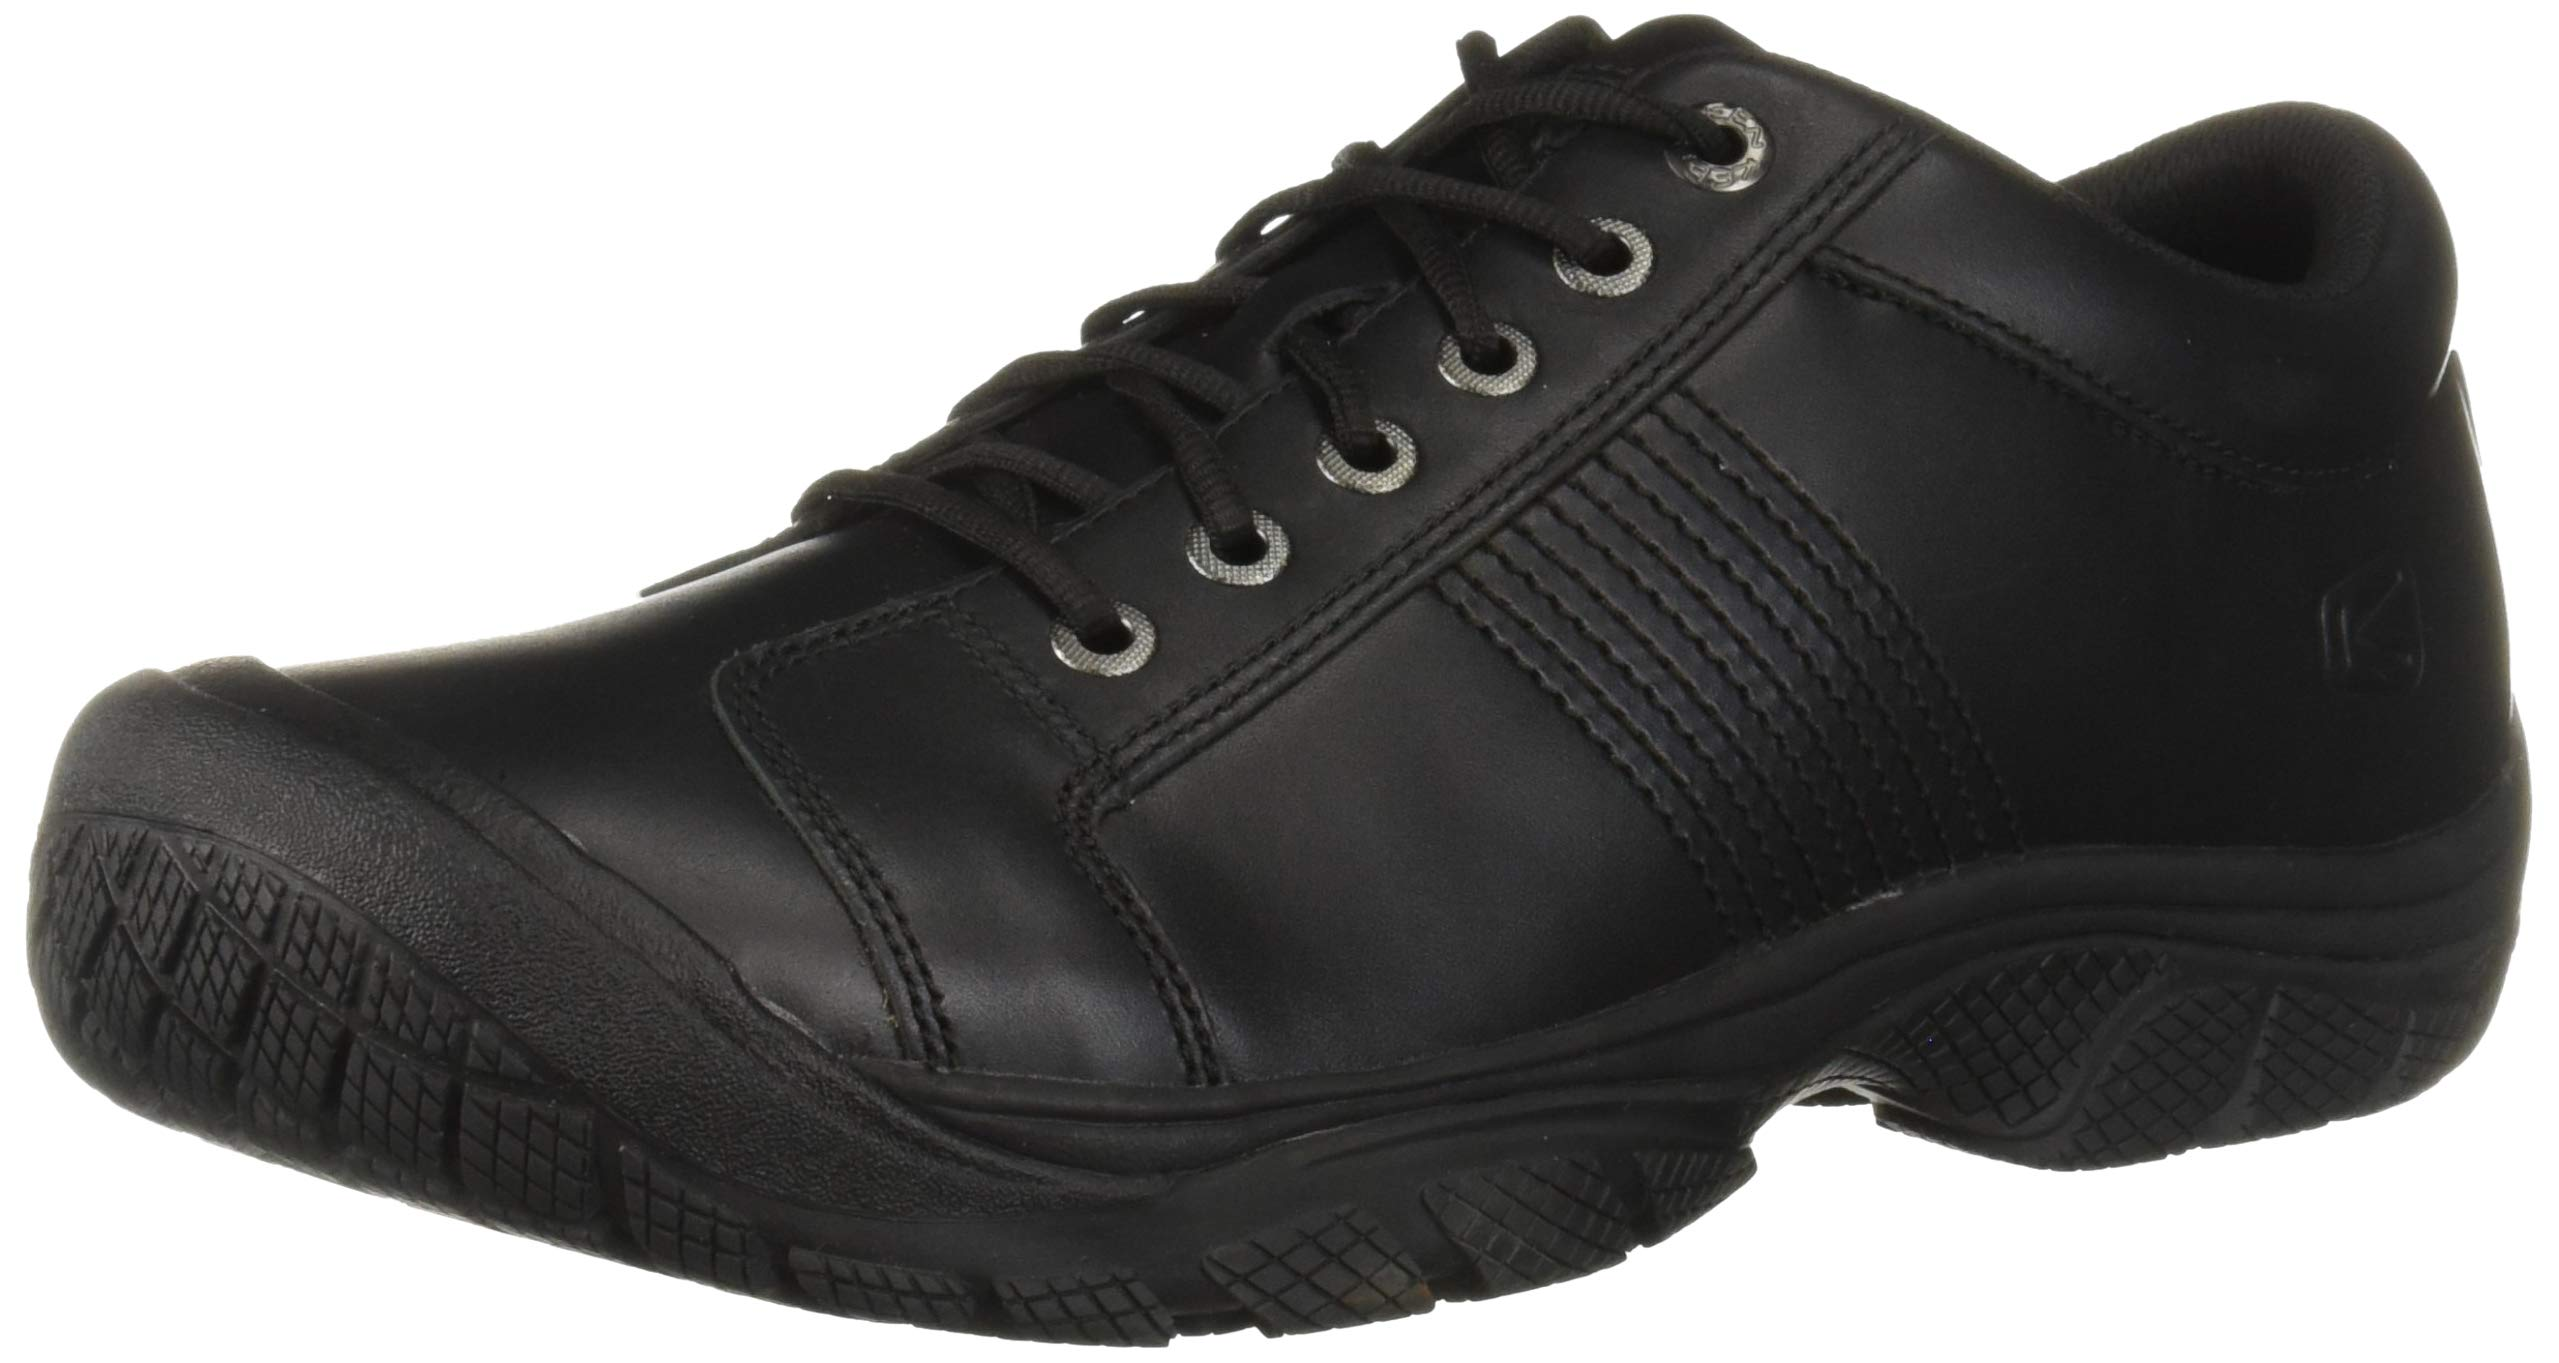 KEEN Utility Men's PTC Oxford Work Shoe,Black,9 M US